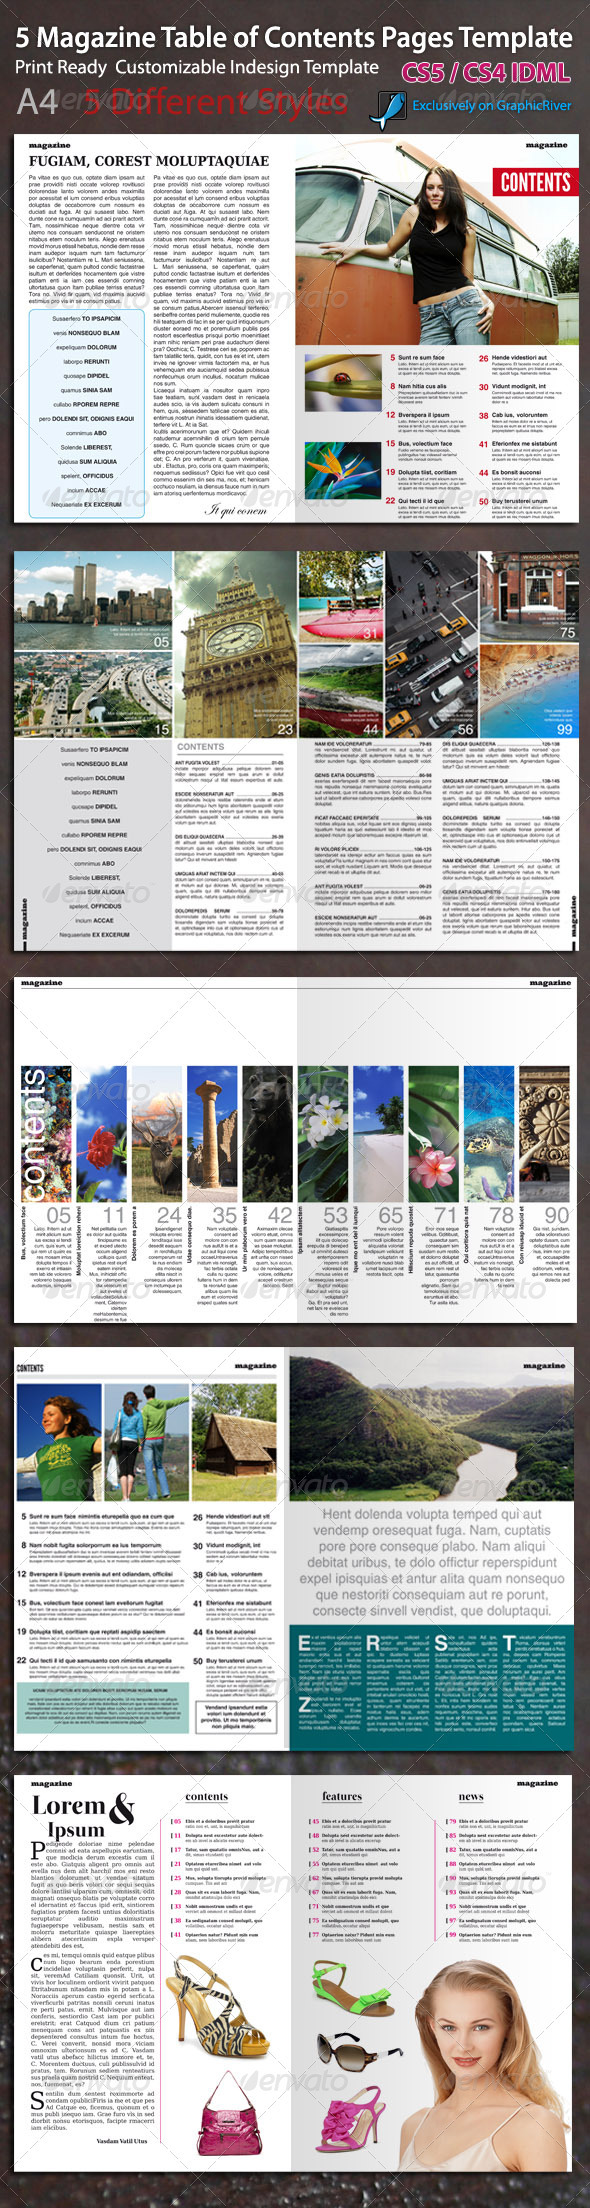 GraphicRiver Magazine Table of Contents Page Template 673889